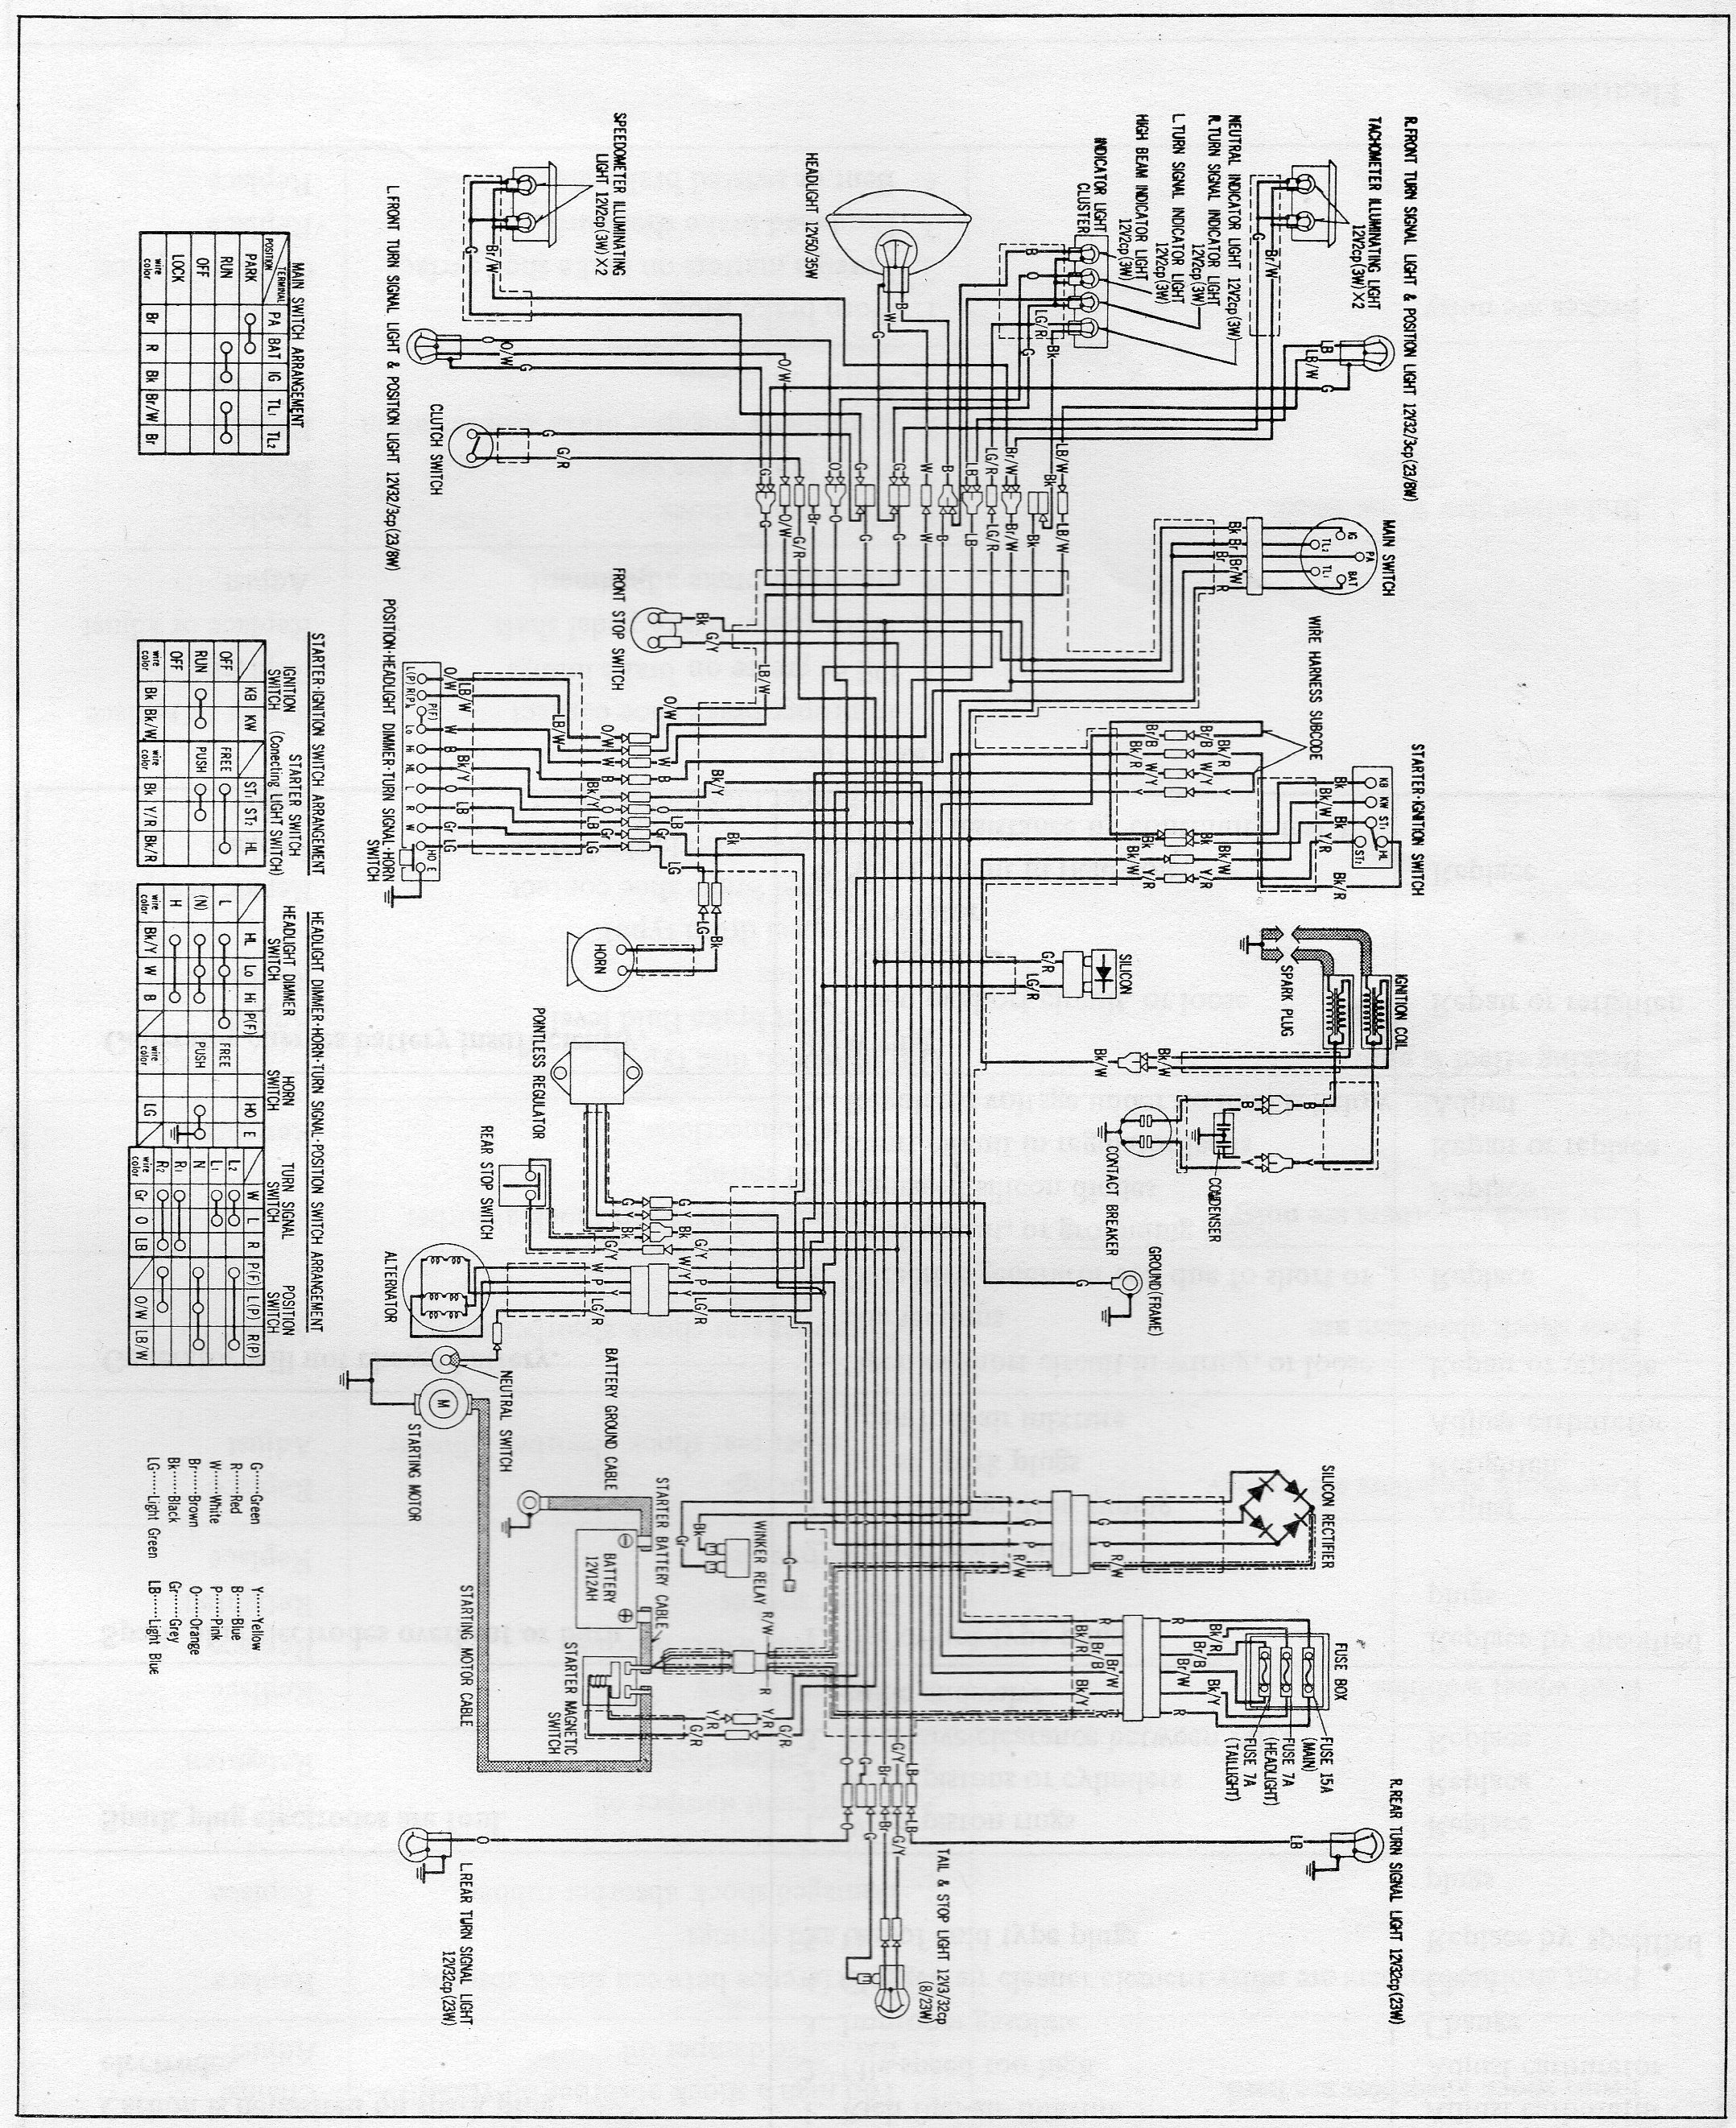 Heil Furnace Wiring Diagram from www.hondatwins.net